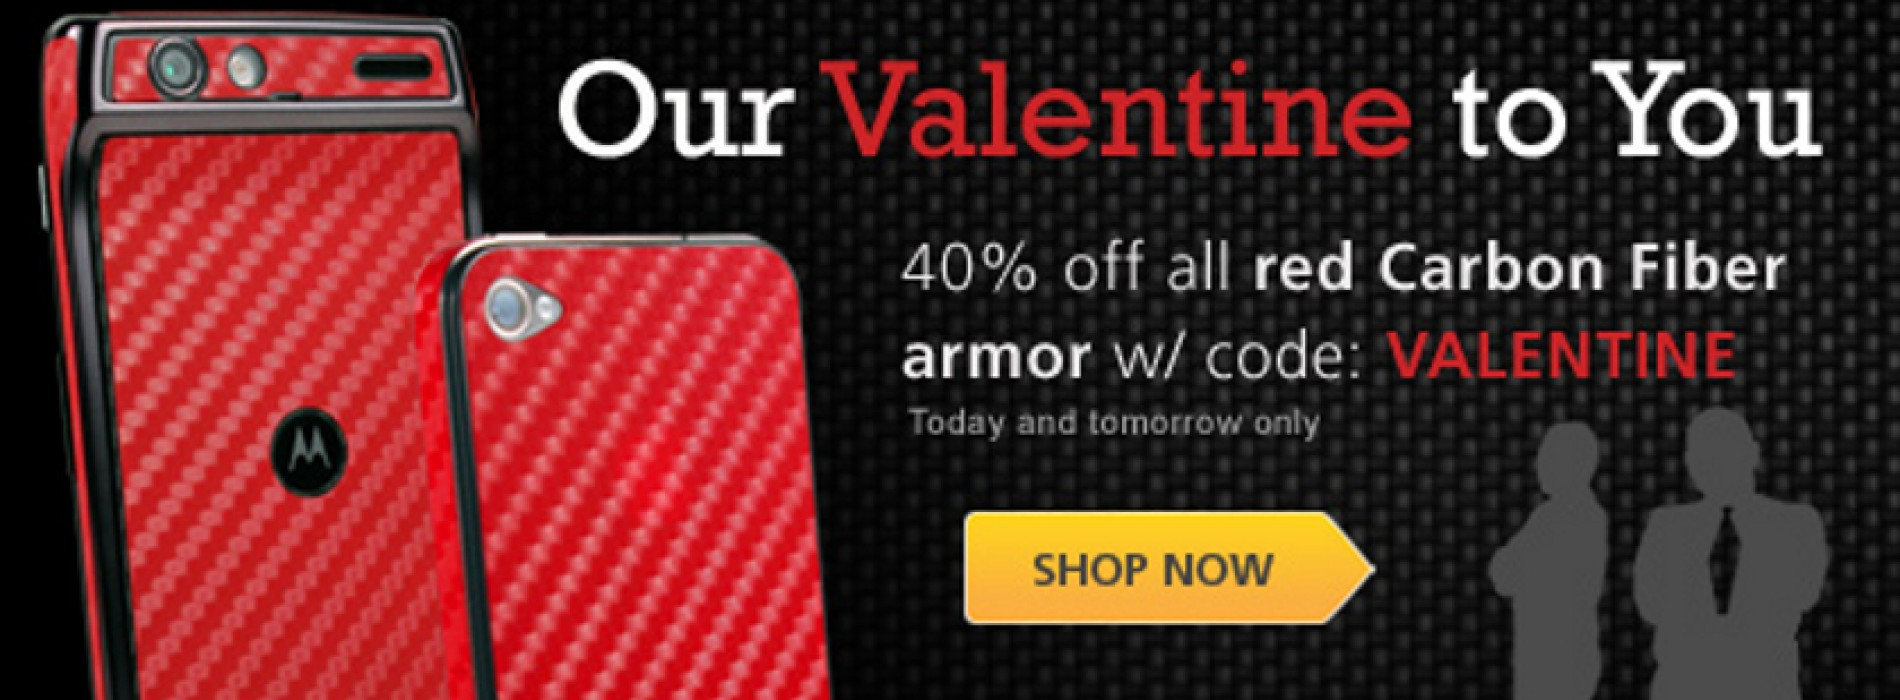 BodyGuardz Red Carbon Fiber Armor 40% Off for Valentine's Day